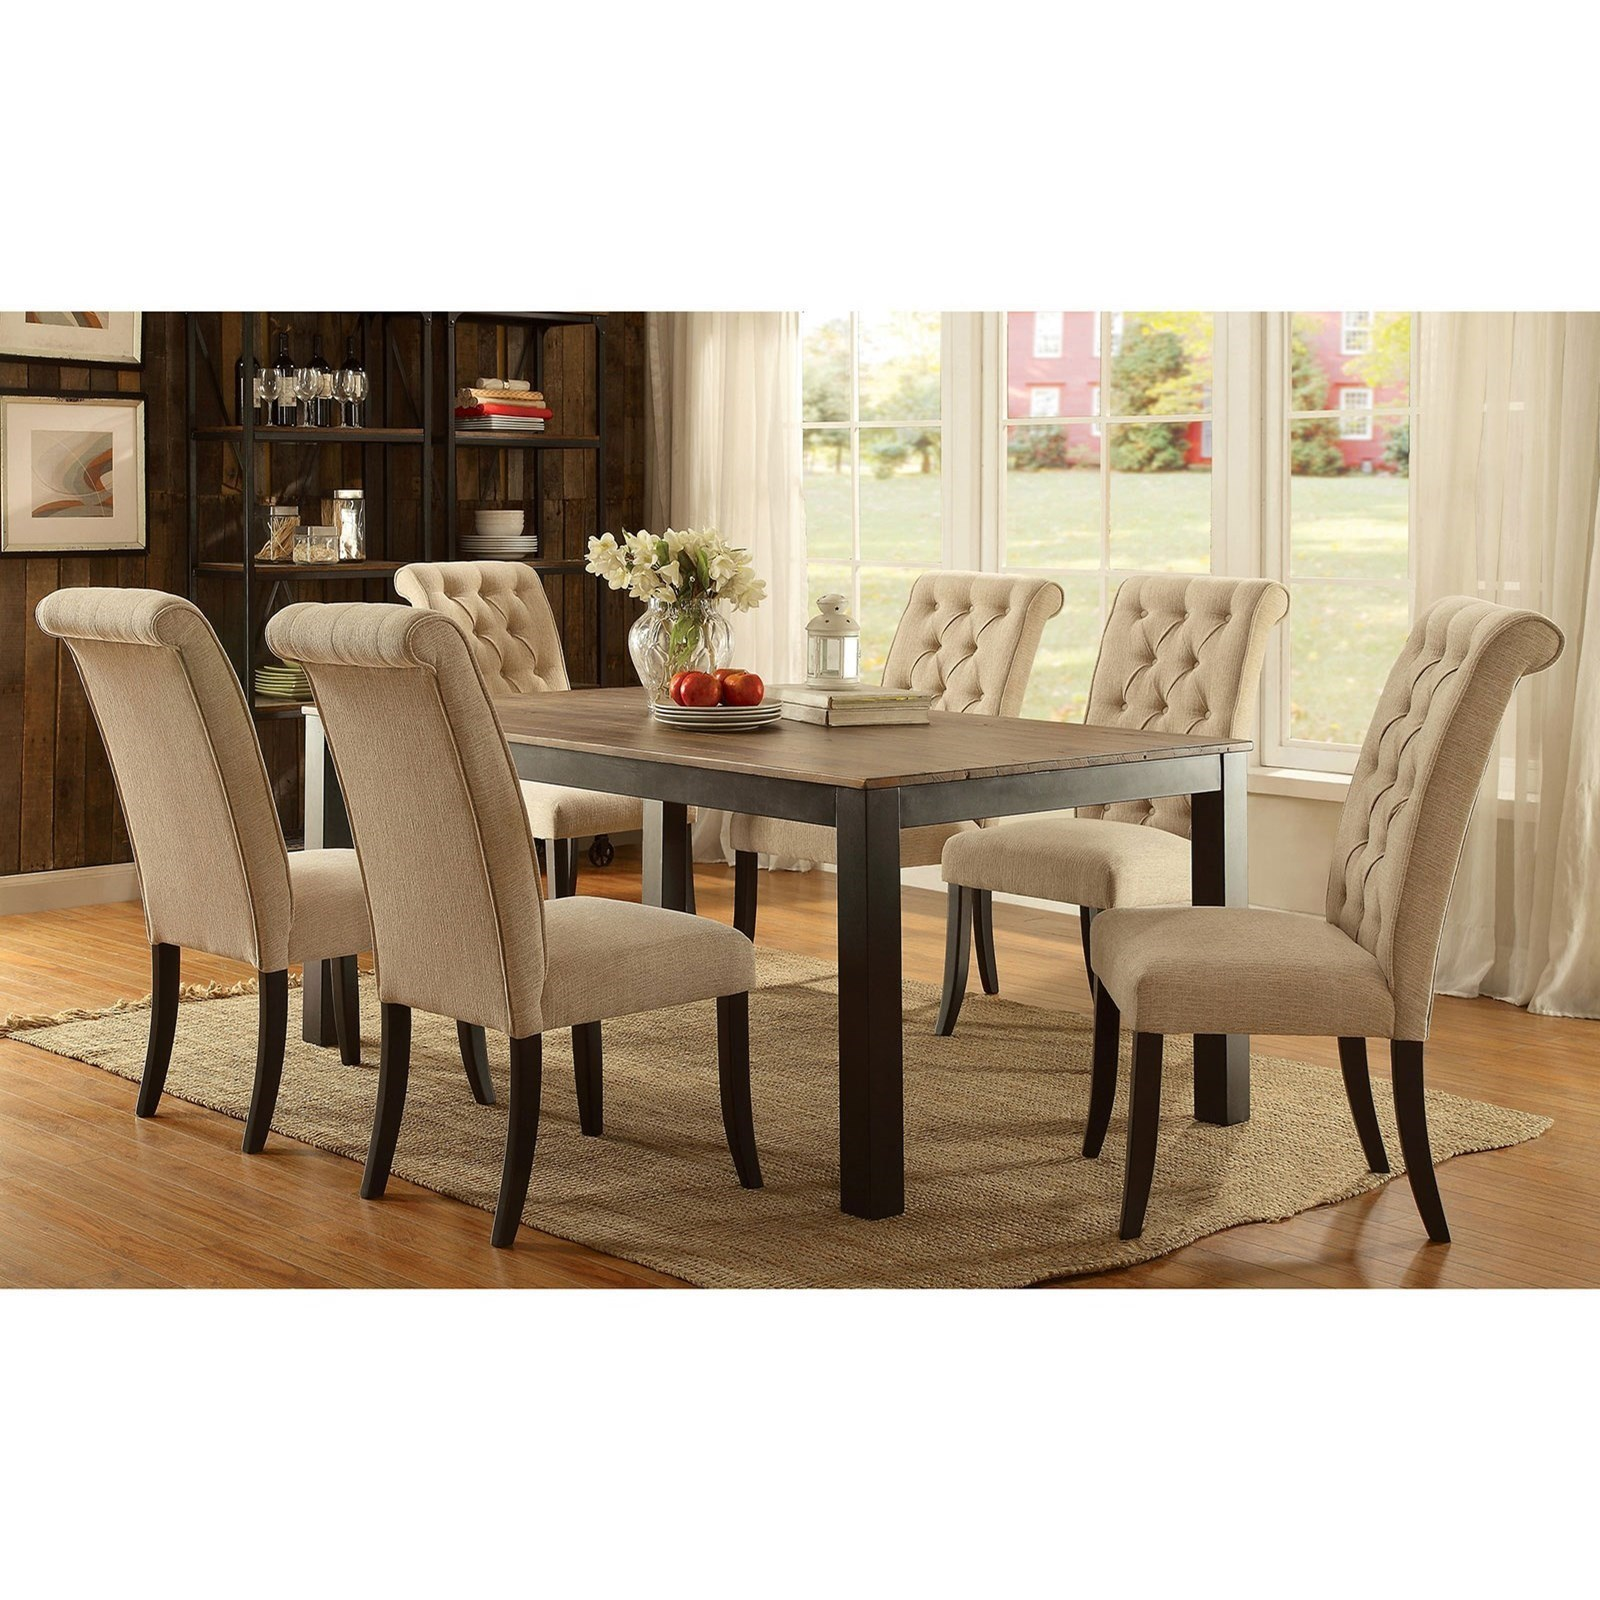 dining chairs at marshalls mission arm chair furniture of america marshall contemporary 7 piece set with button tufted